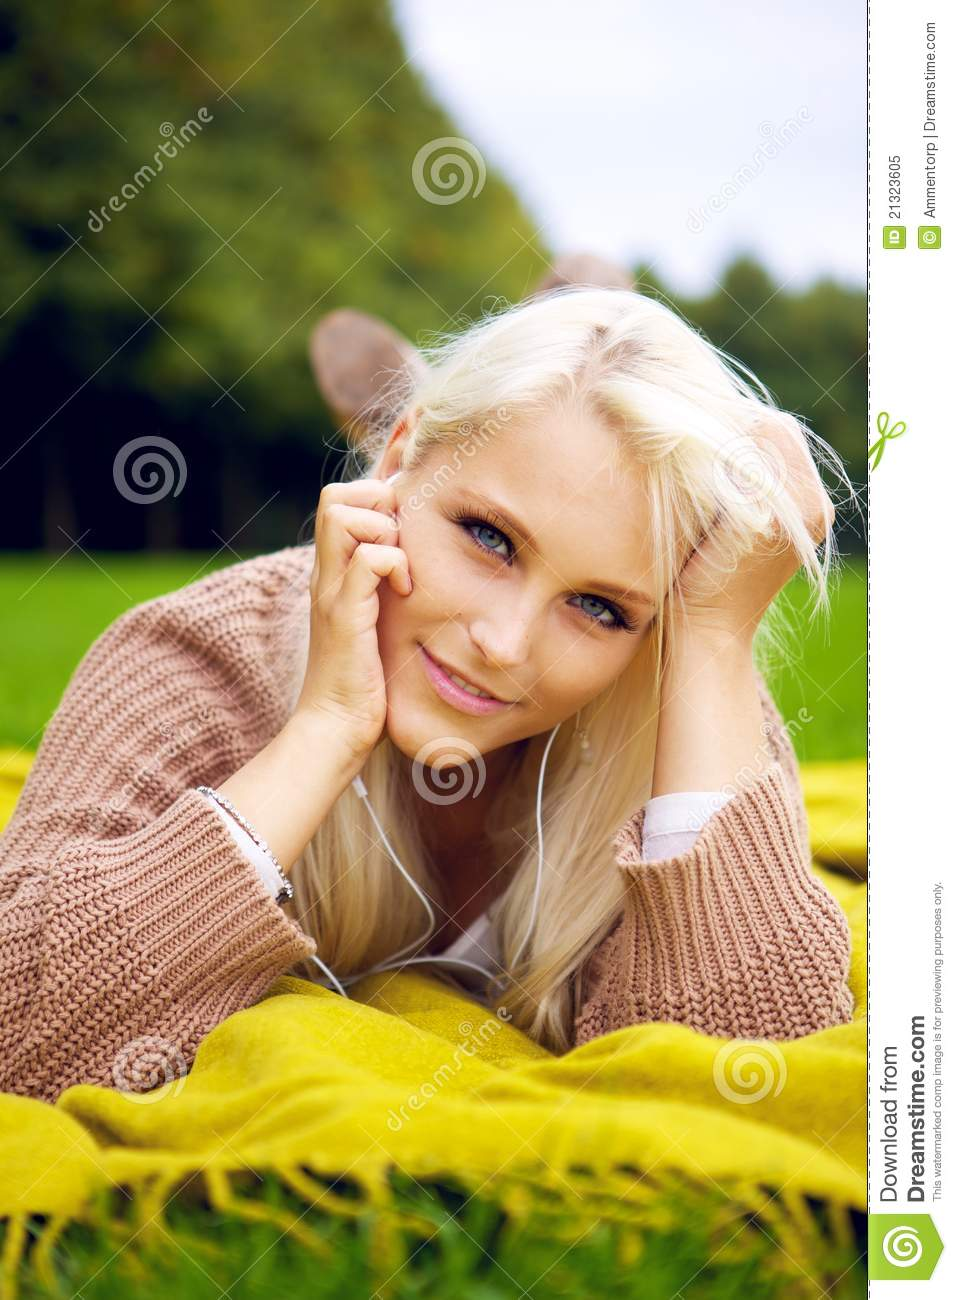 Cute Flirting Look In Park Royalty Free Stock Photo